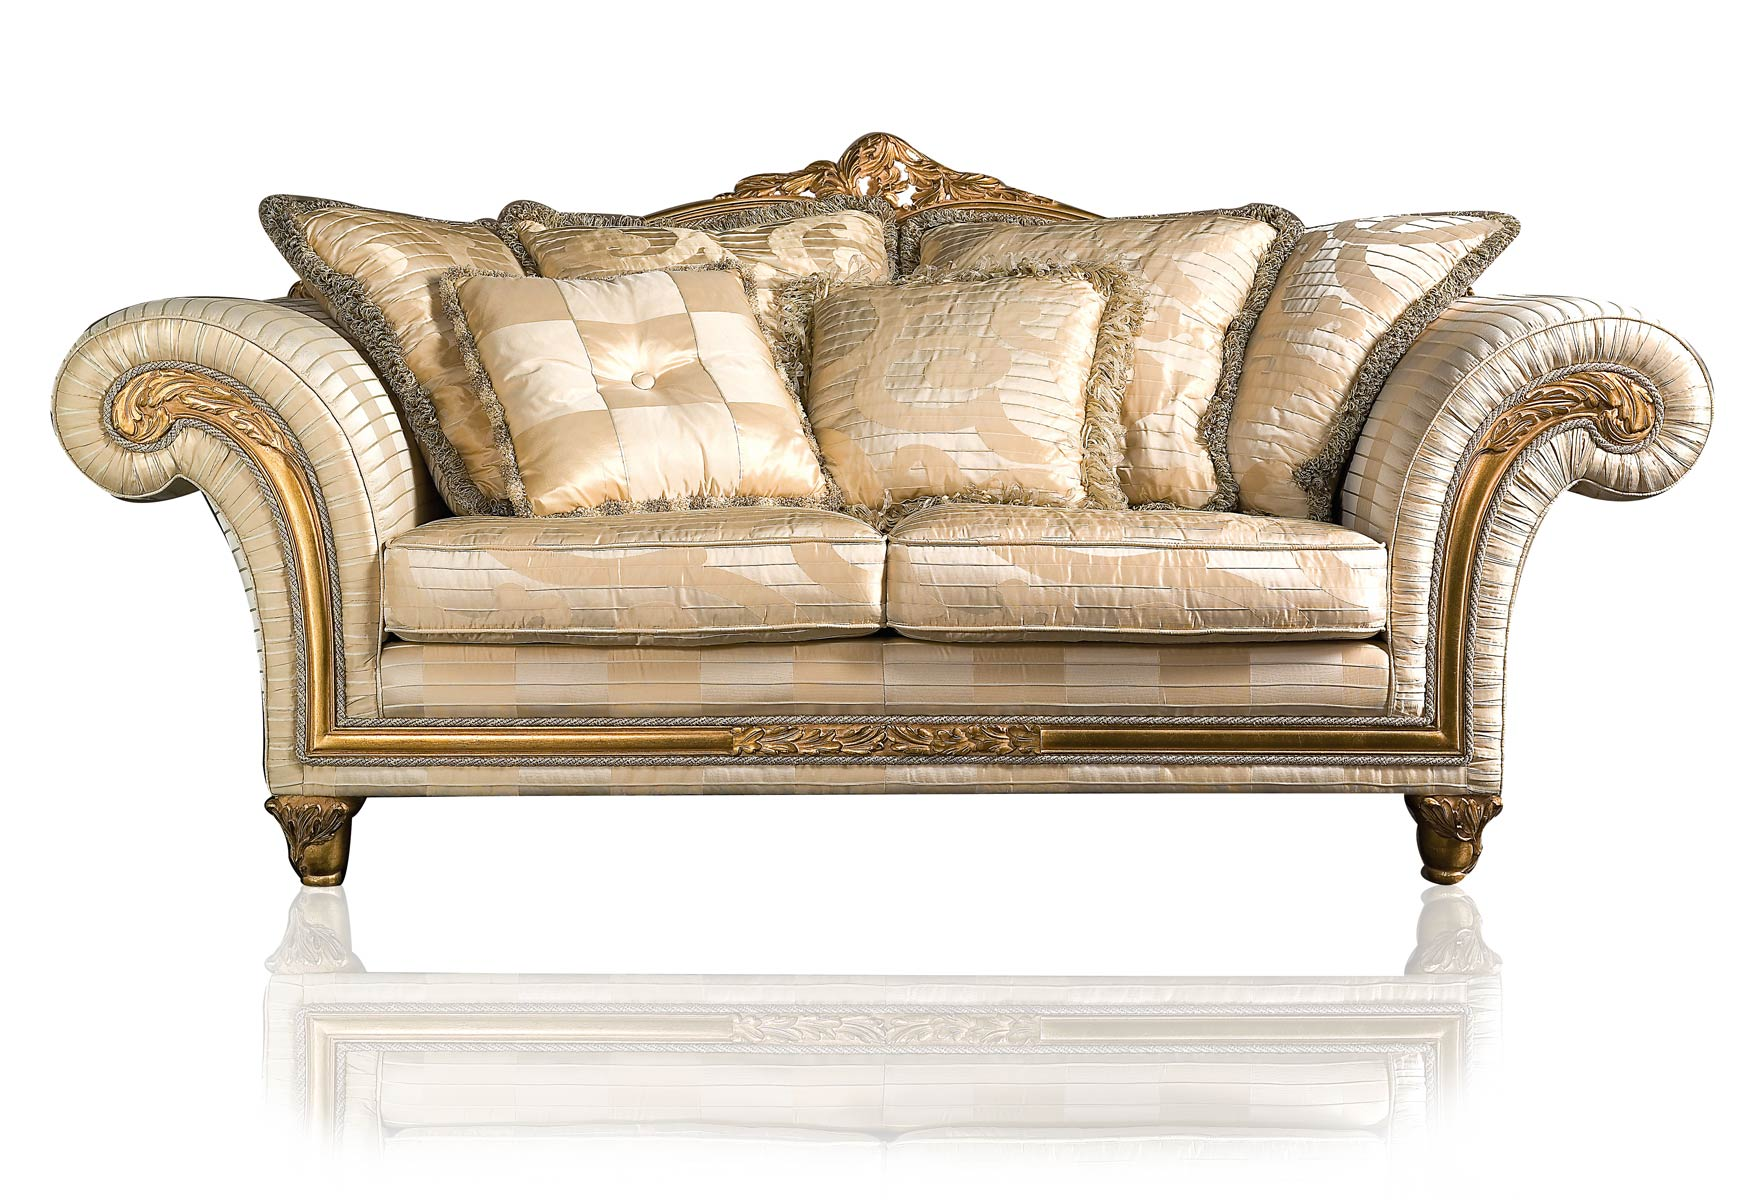 Luxury classic sofa and armchairs imperial by vimercati for Sofa modern classic